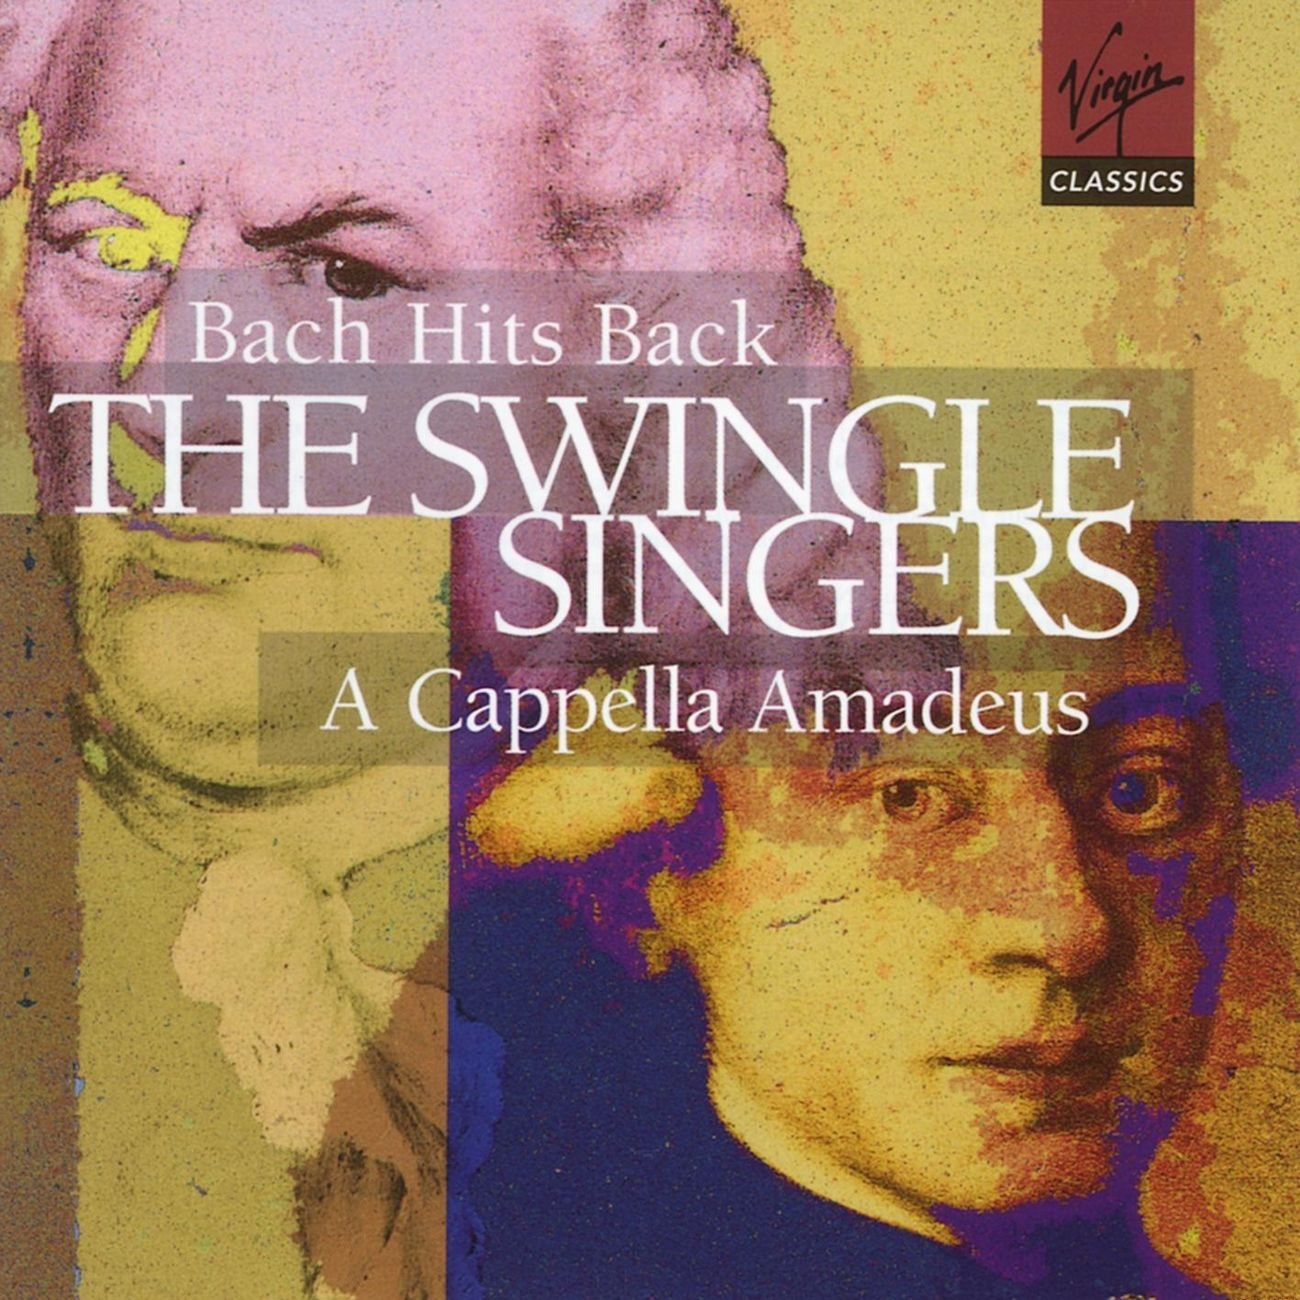 The Swingle Singers - Bach Hits Back ~ A Capella Amadeus by EMI